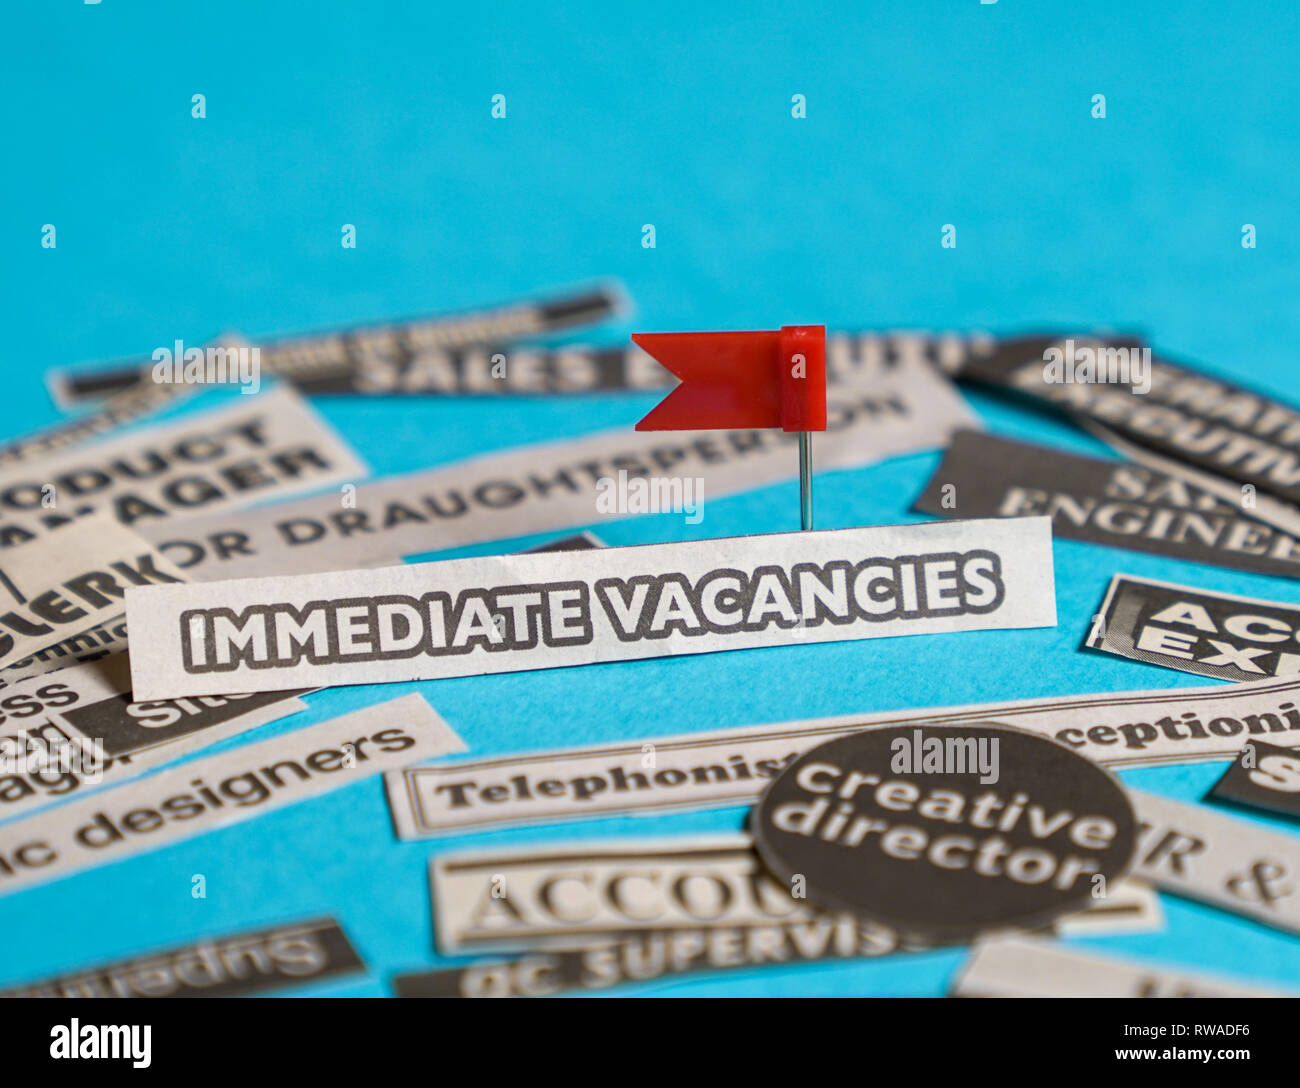 Jobs or careers concept: multiple job titles or occupations cut off from newspaper with Immediate Vacancies at the centre of the pile, blue background - Stock Image